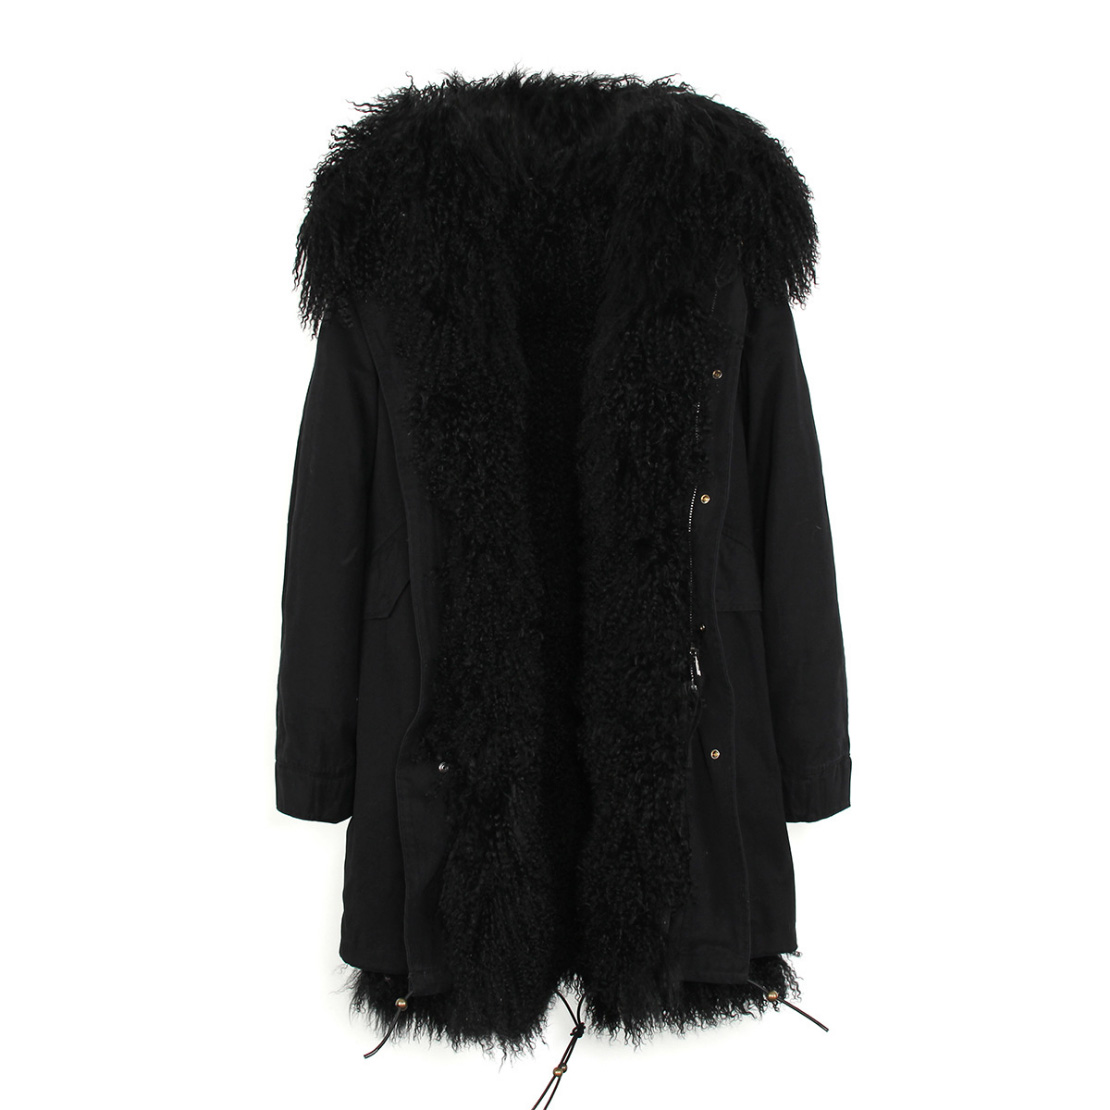 Tibet Sheep Fur Hooded Parka 119 Details 13